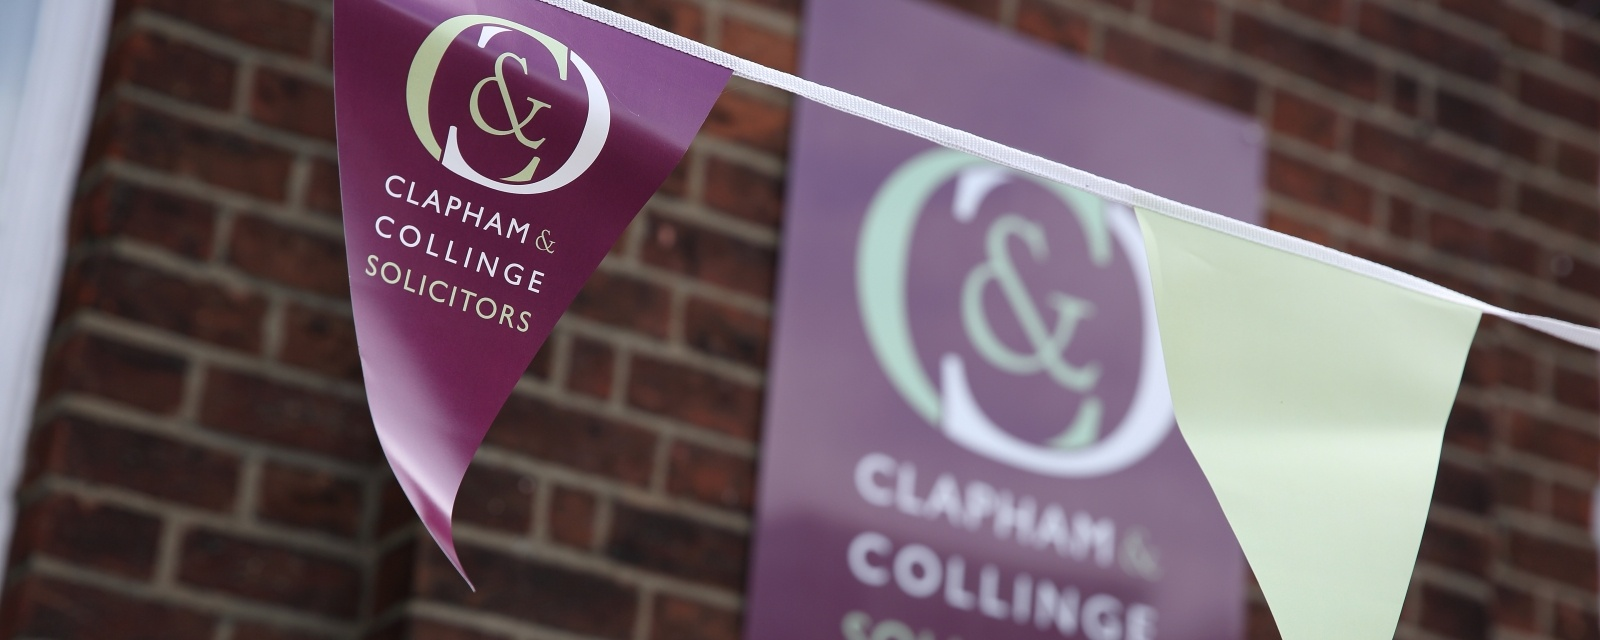 Clapham & Collinge - Independent Solicitors in Norwich, North Walsham, Brooke and Sheringham.